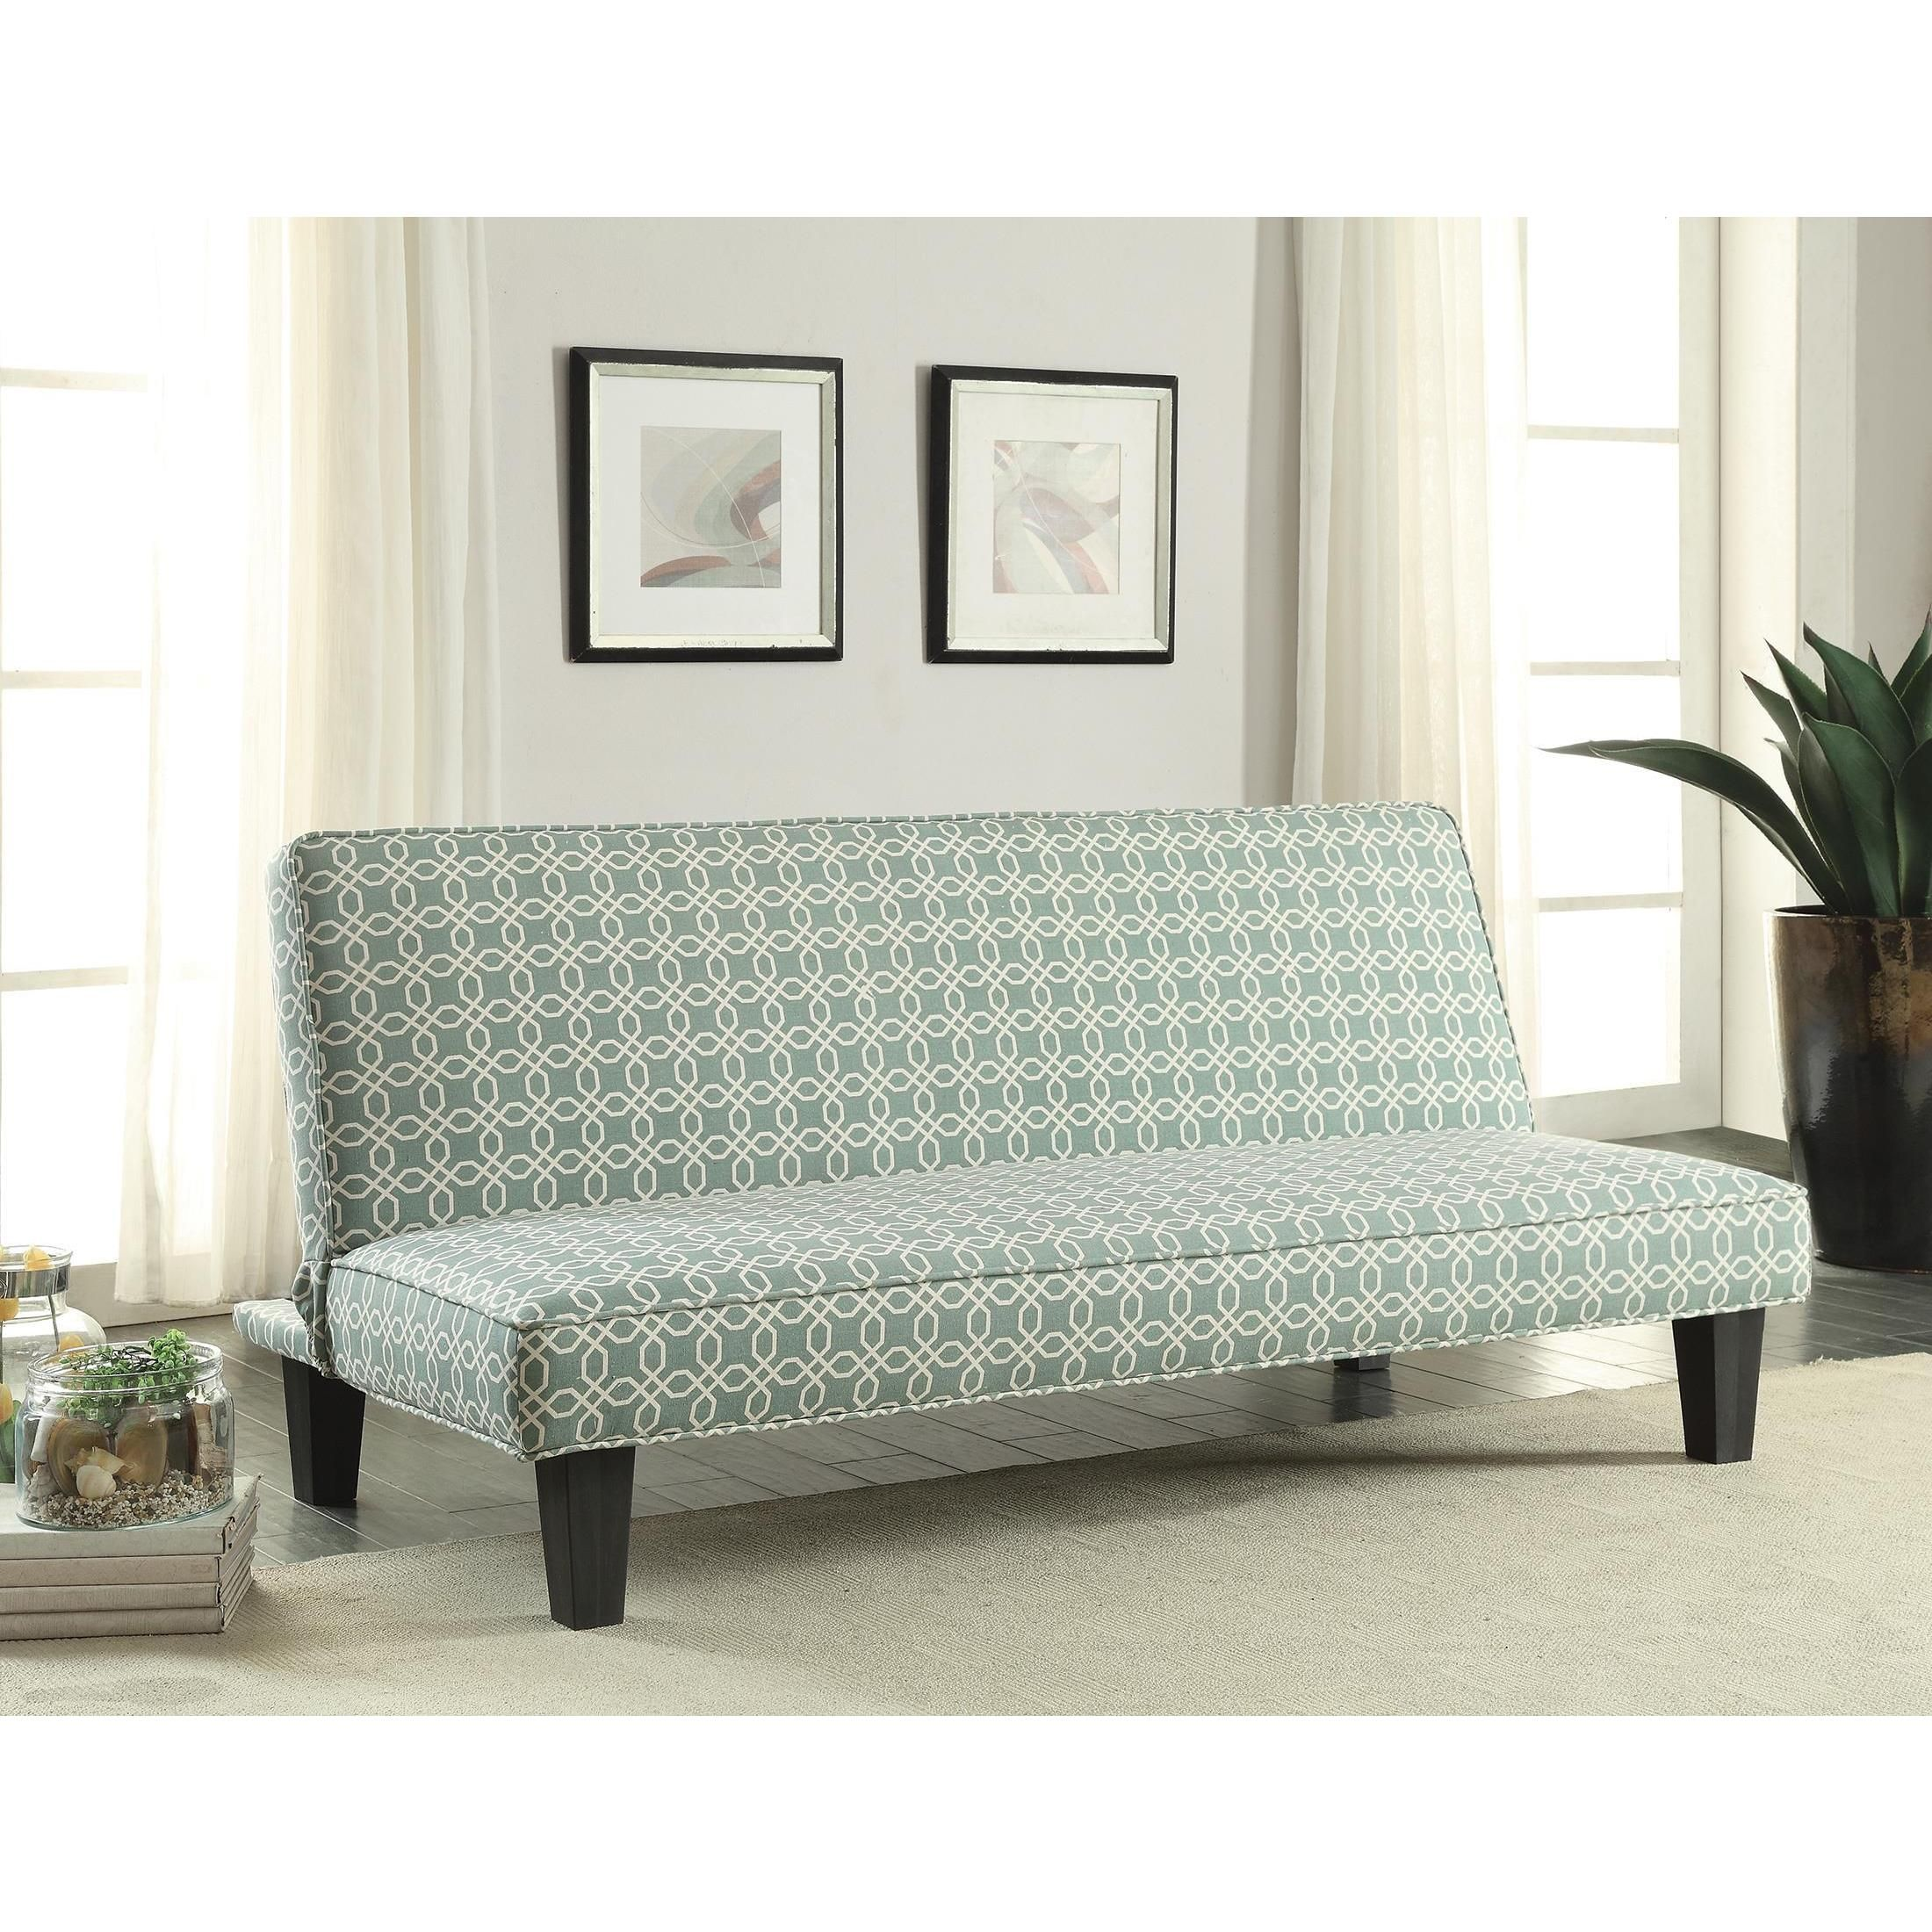 couch for ideas target patterned collection best of sofas slipcovers sofa epic